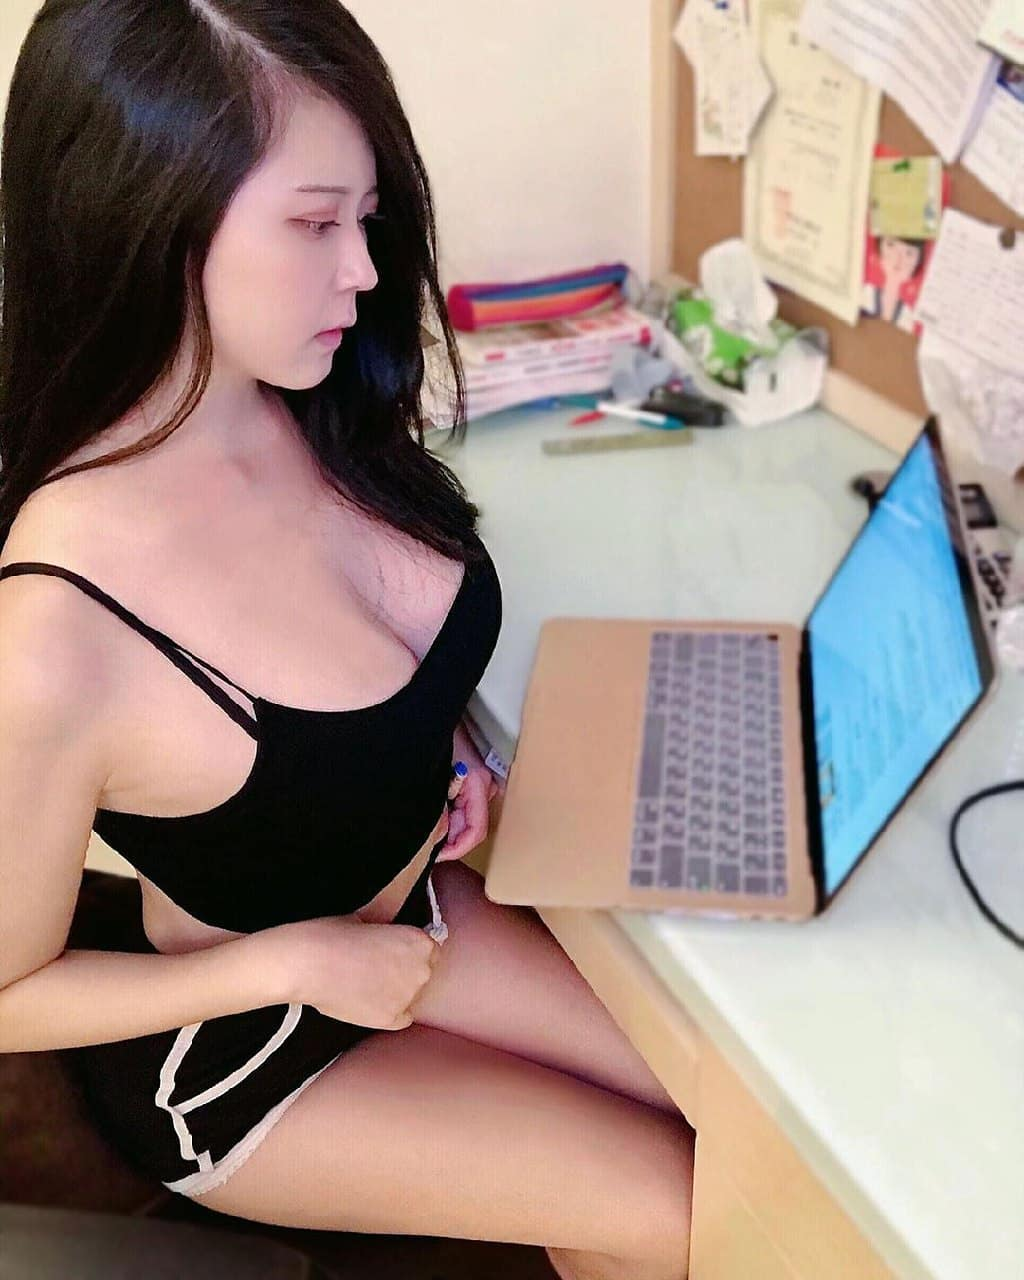 Beautiful Taiwan women people, and not with the